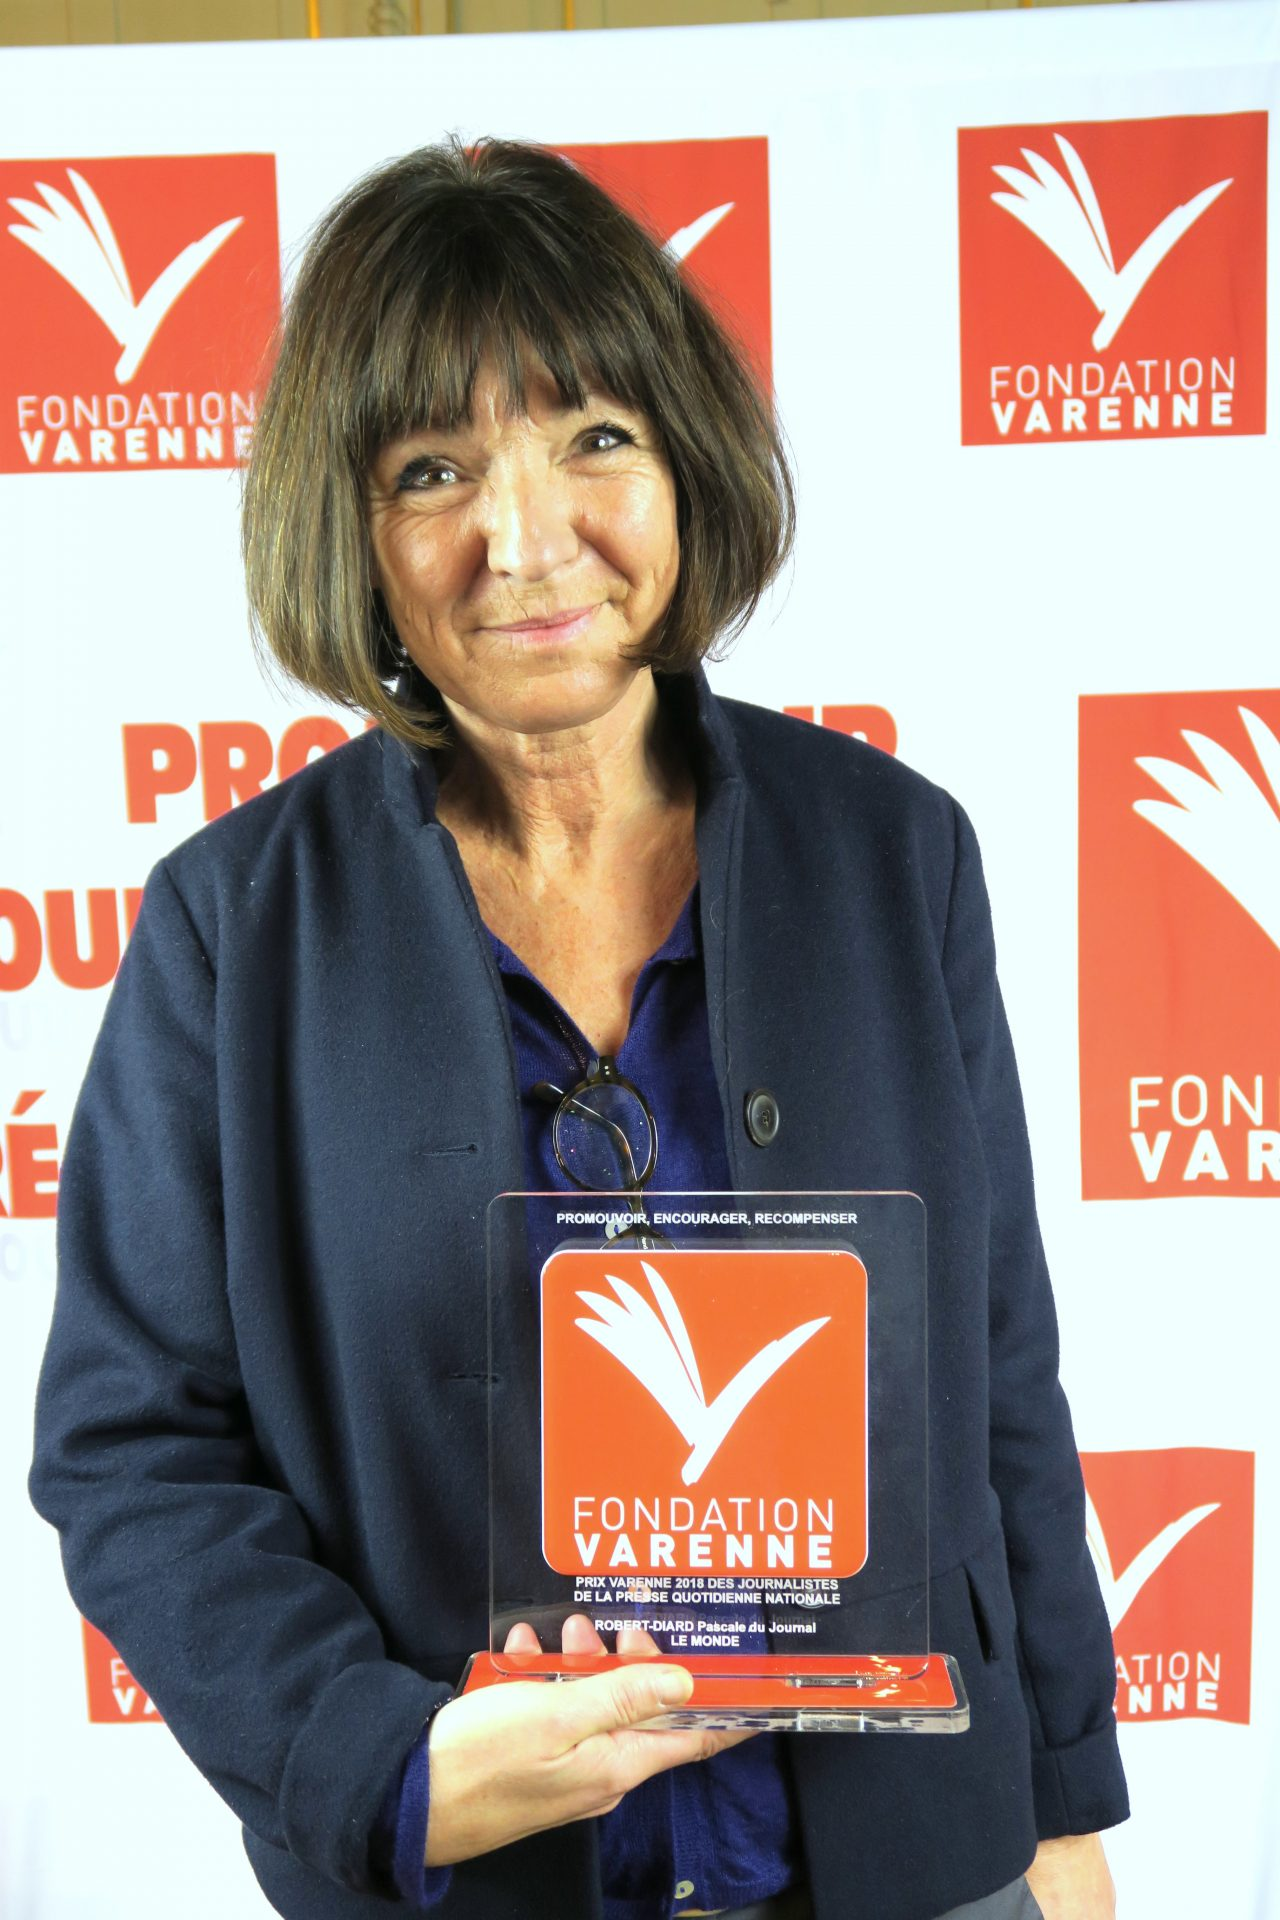 Pascale Robert-Diard Grand Varenne Presse nationale